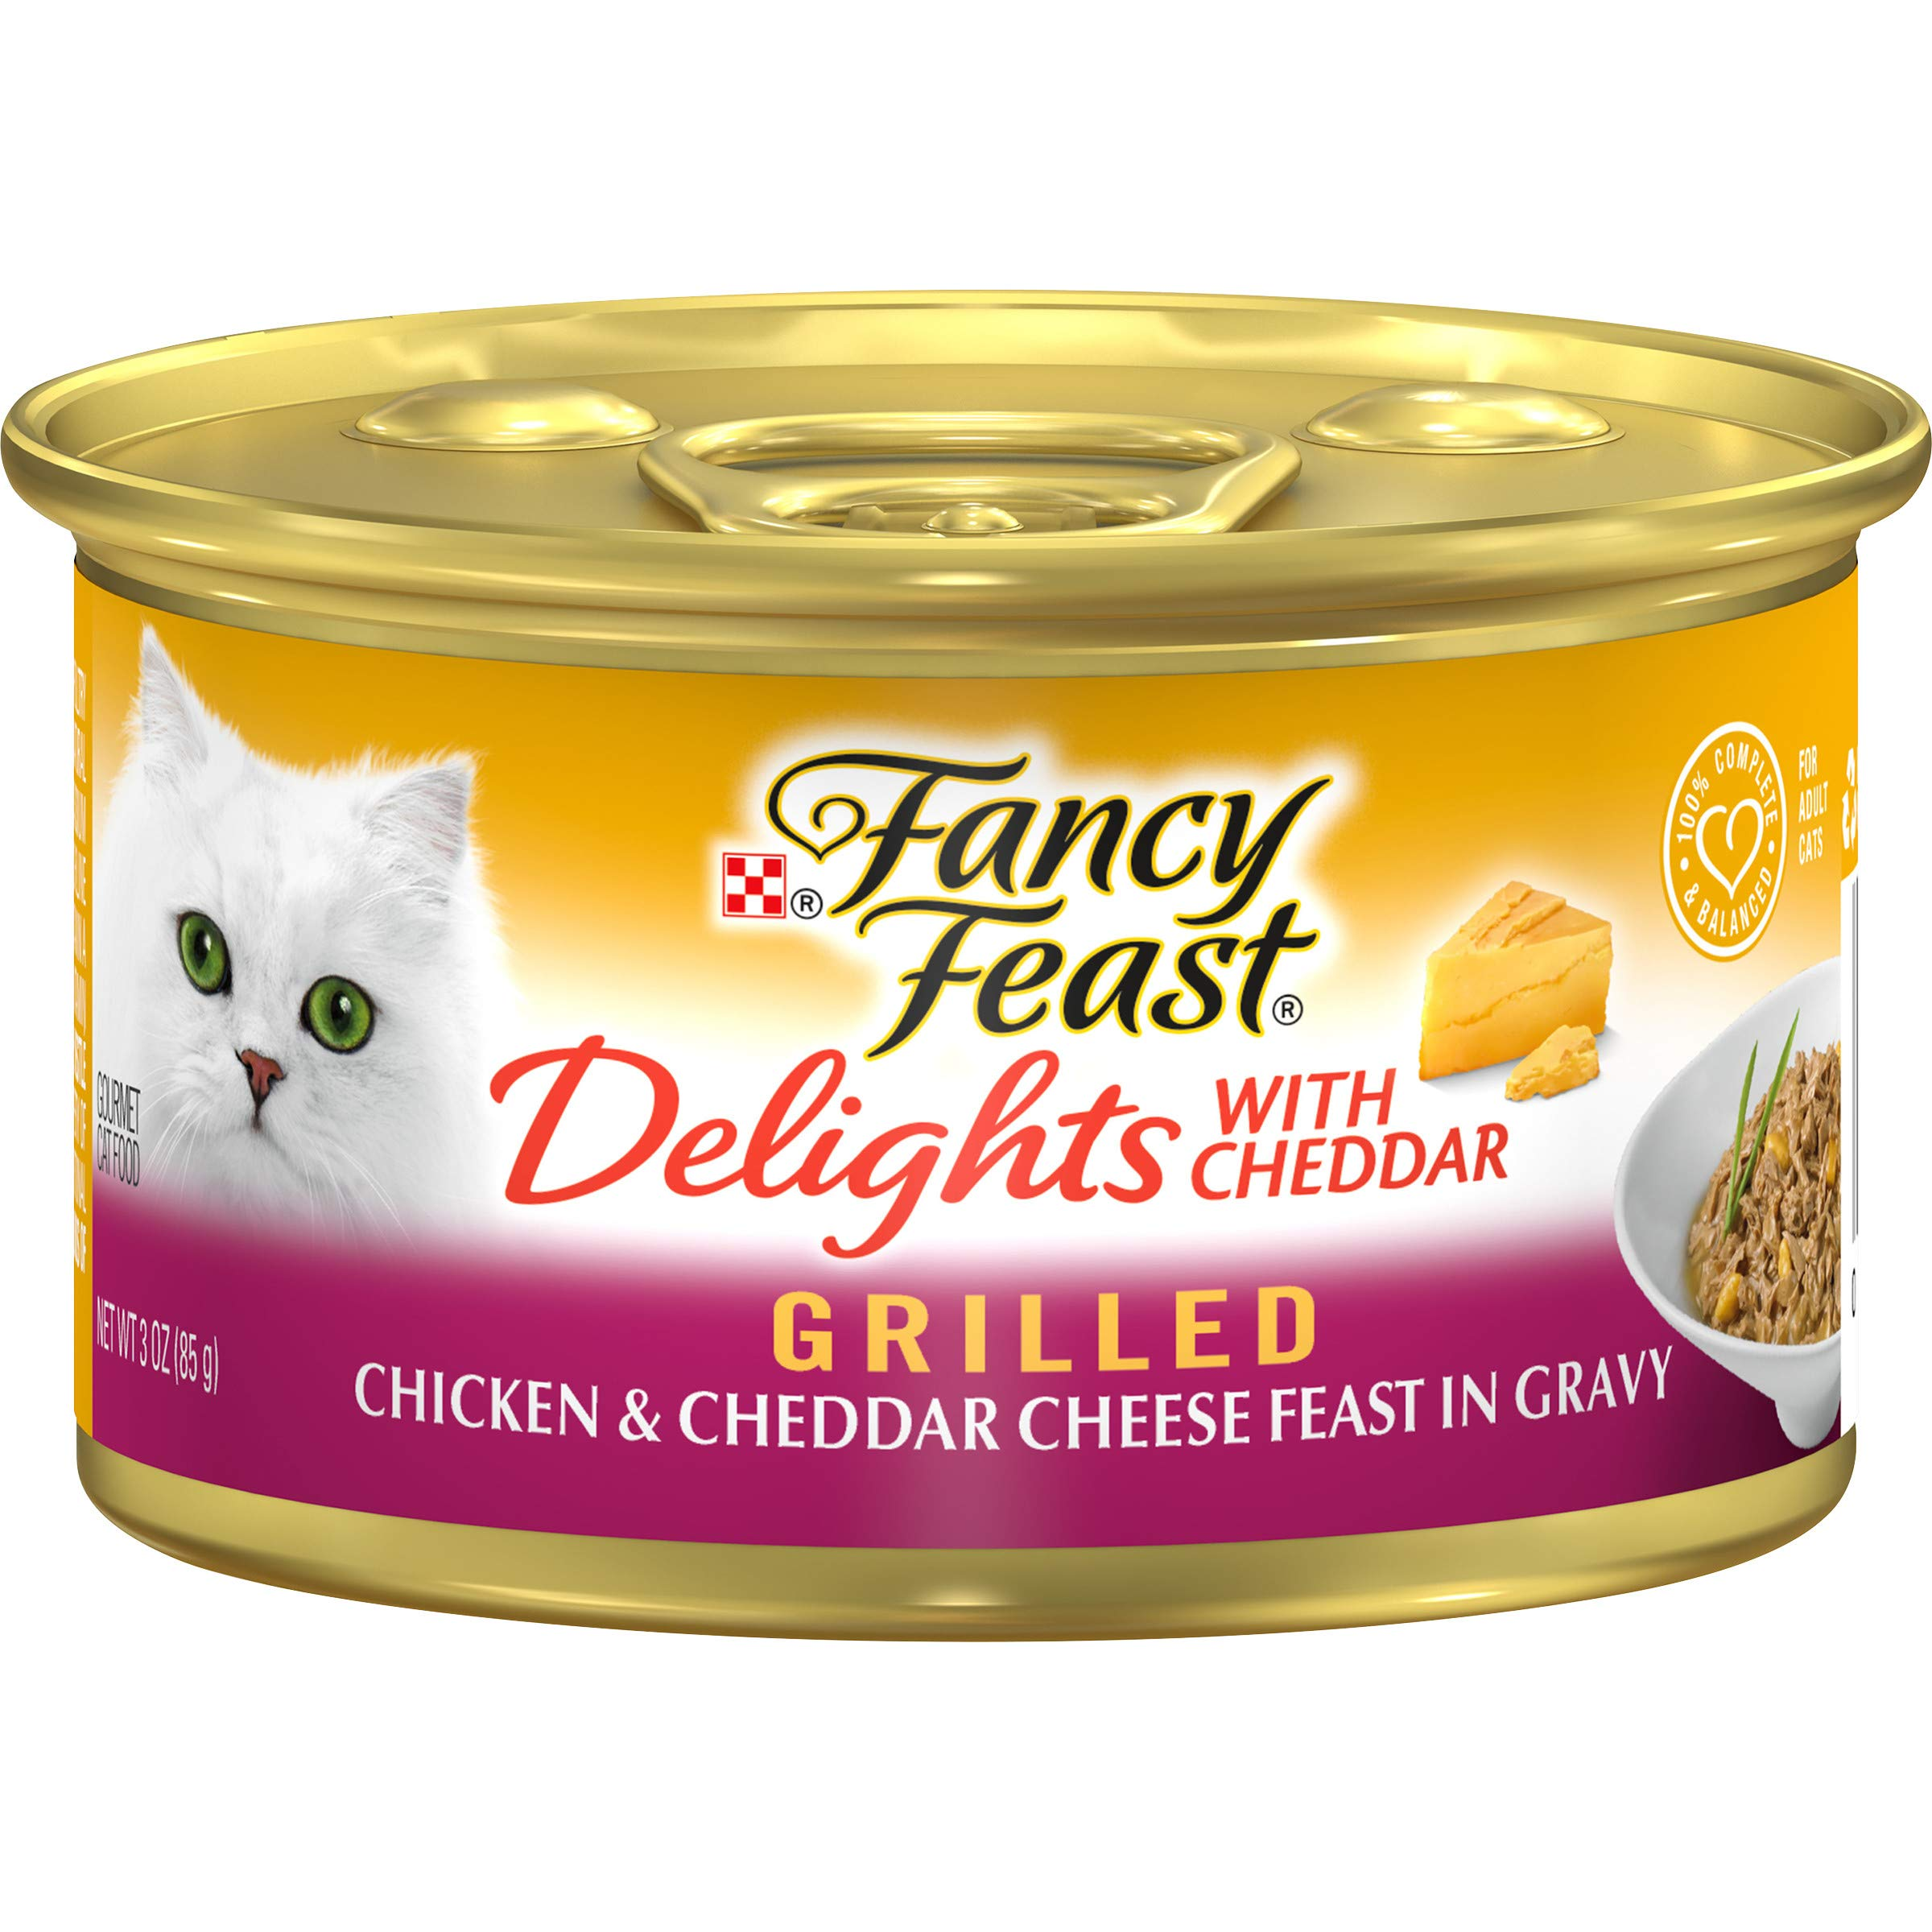 Purina Fancy Feast Grilled Gravy Wet Cat Food, Delights Grilled Chicken & Cheddar Cheese Feast - (24) 3 oz. Cans